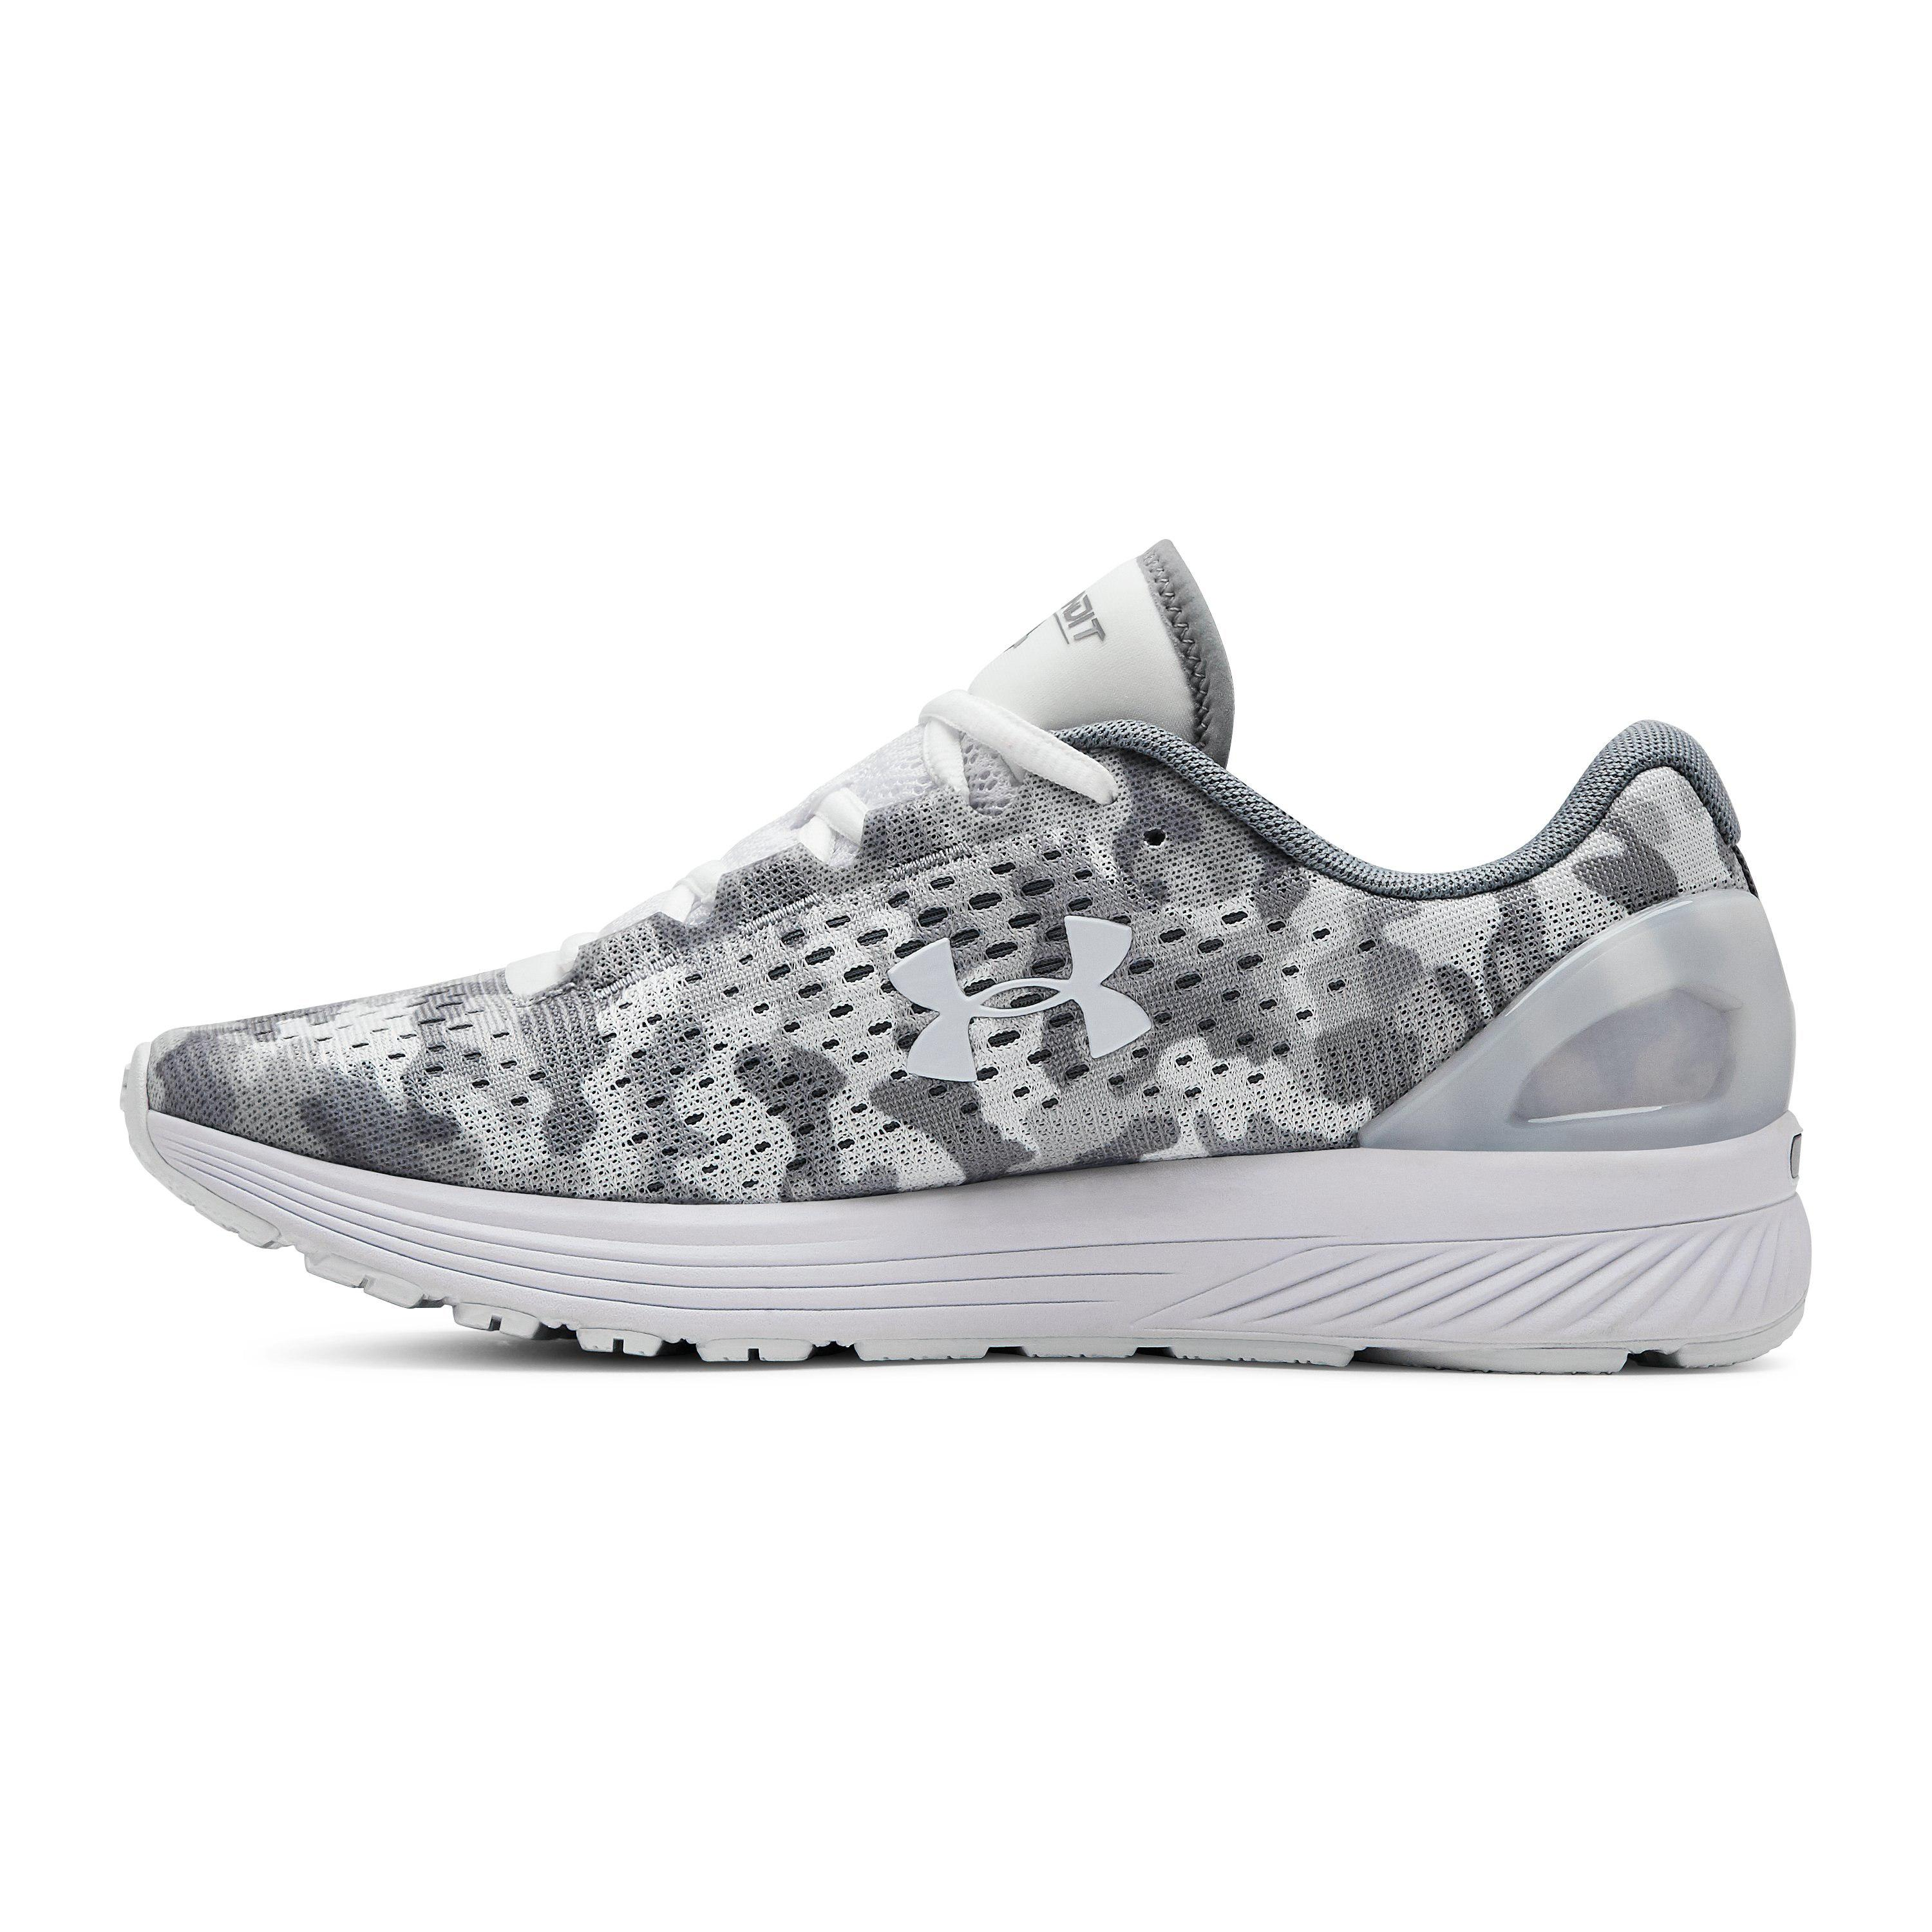 quality design 6890f 7ad01 White Women's Ua Charged Bandit 4 Graphic Running Shoes